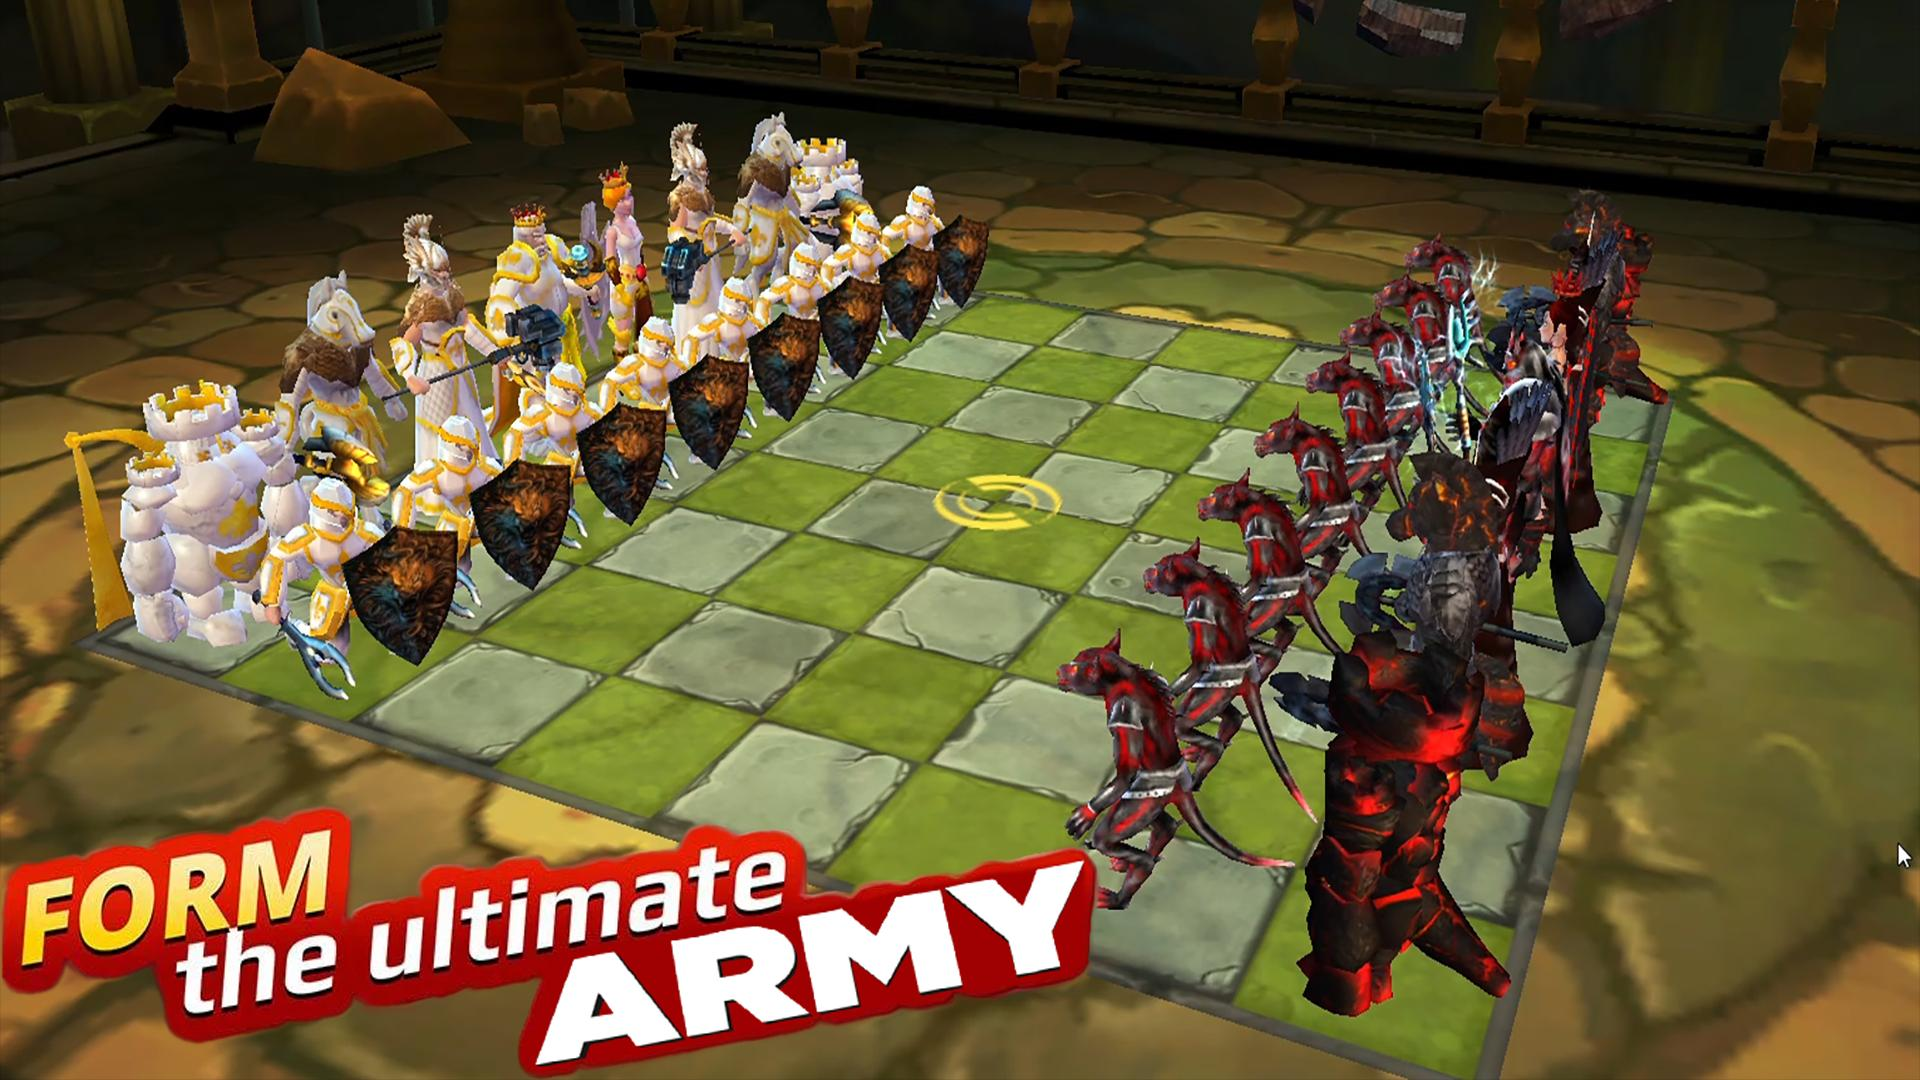 Battle Chess Online 3D for Android - APK Download